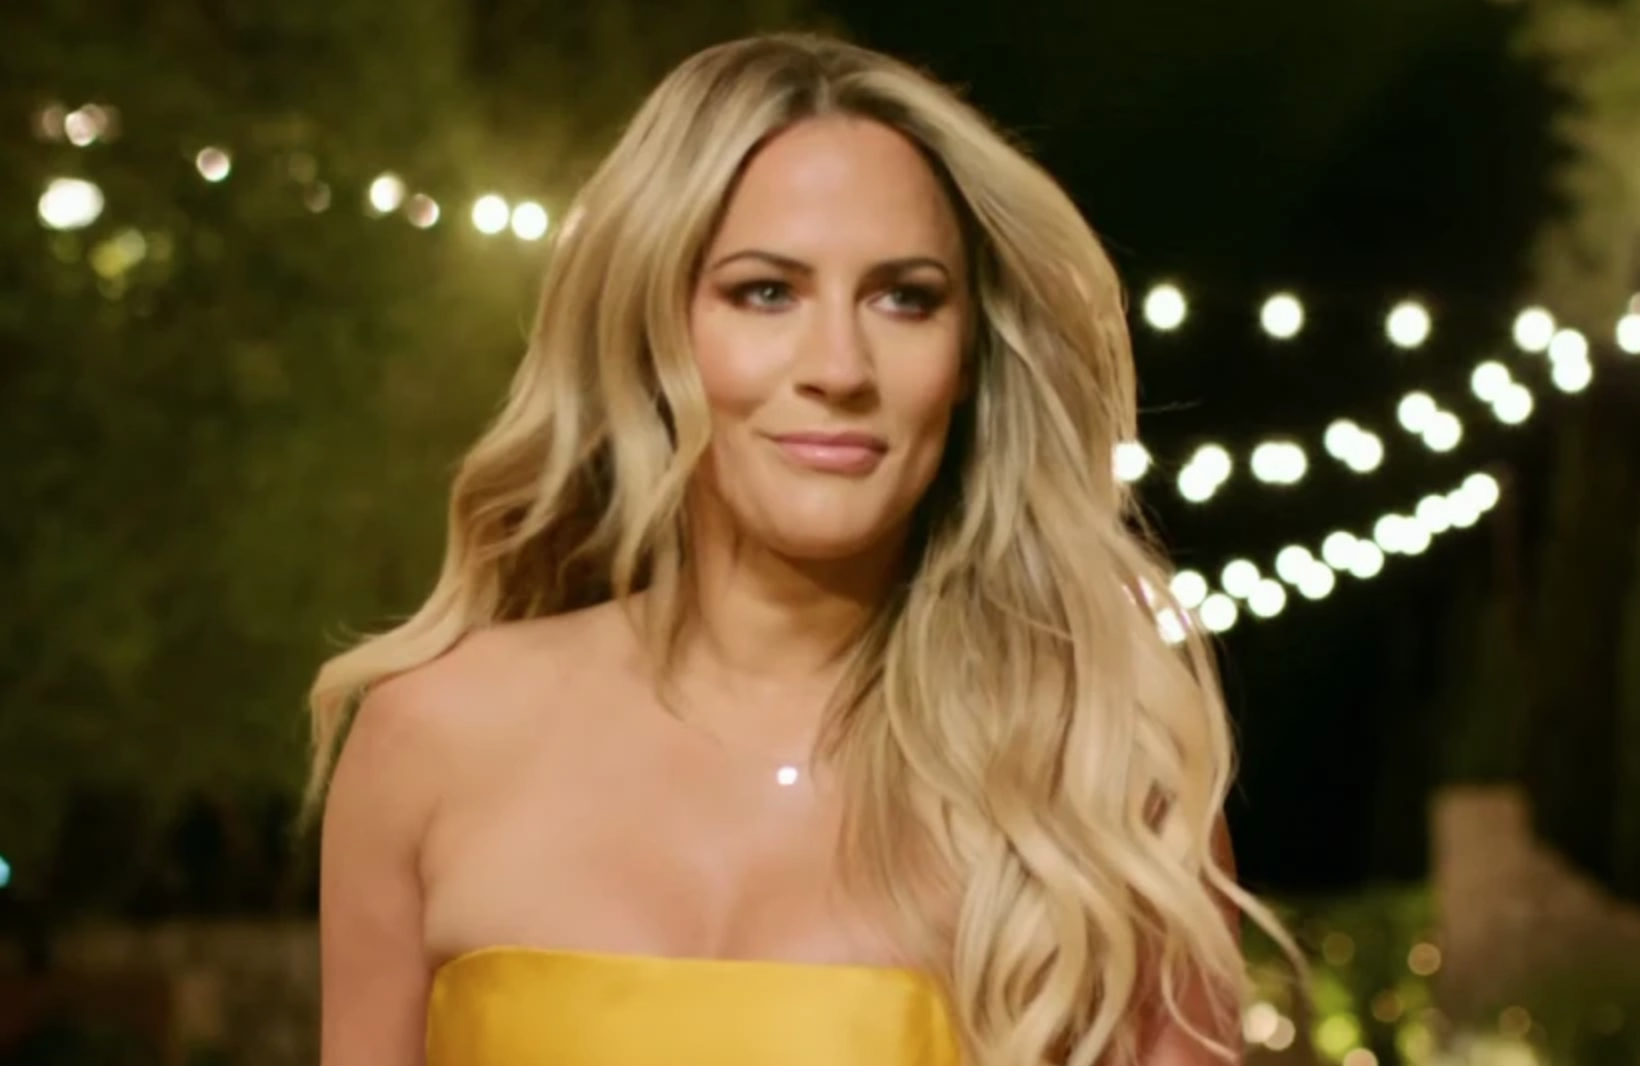 Emotional viewers moved to tears by touching Love Island tribute to Caroline Flack